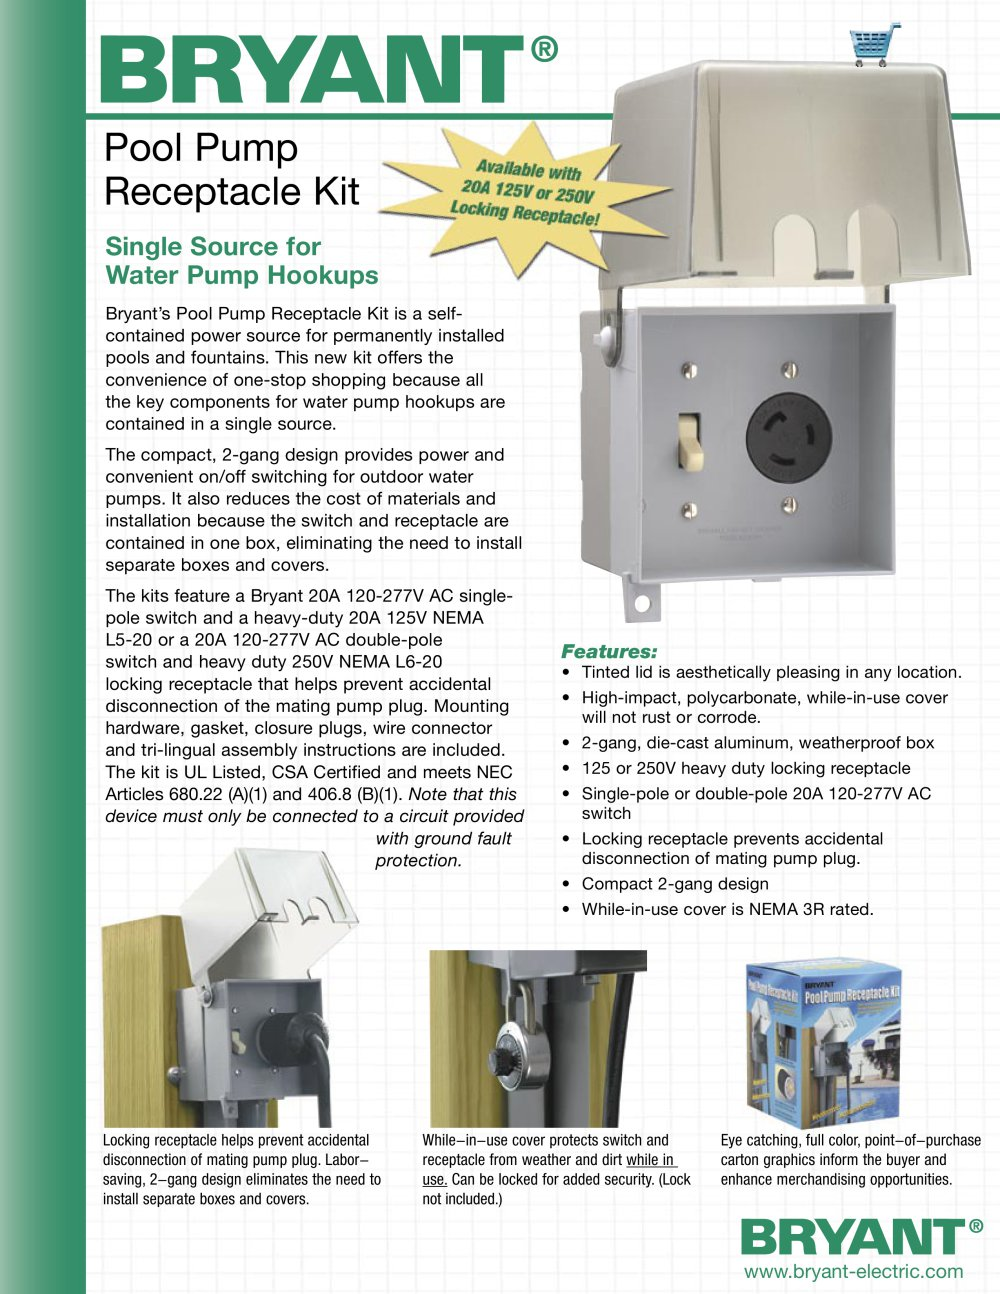 Pool Pump Receptacle Kit Bryant Electric Pdf Catalogue How To Add Gfci A Box With One Outlet Controlled By Switch 1 2 Pages Mydirectindustry Favorites